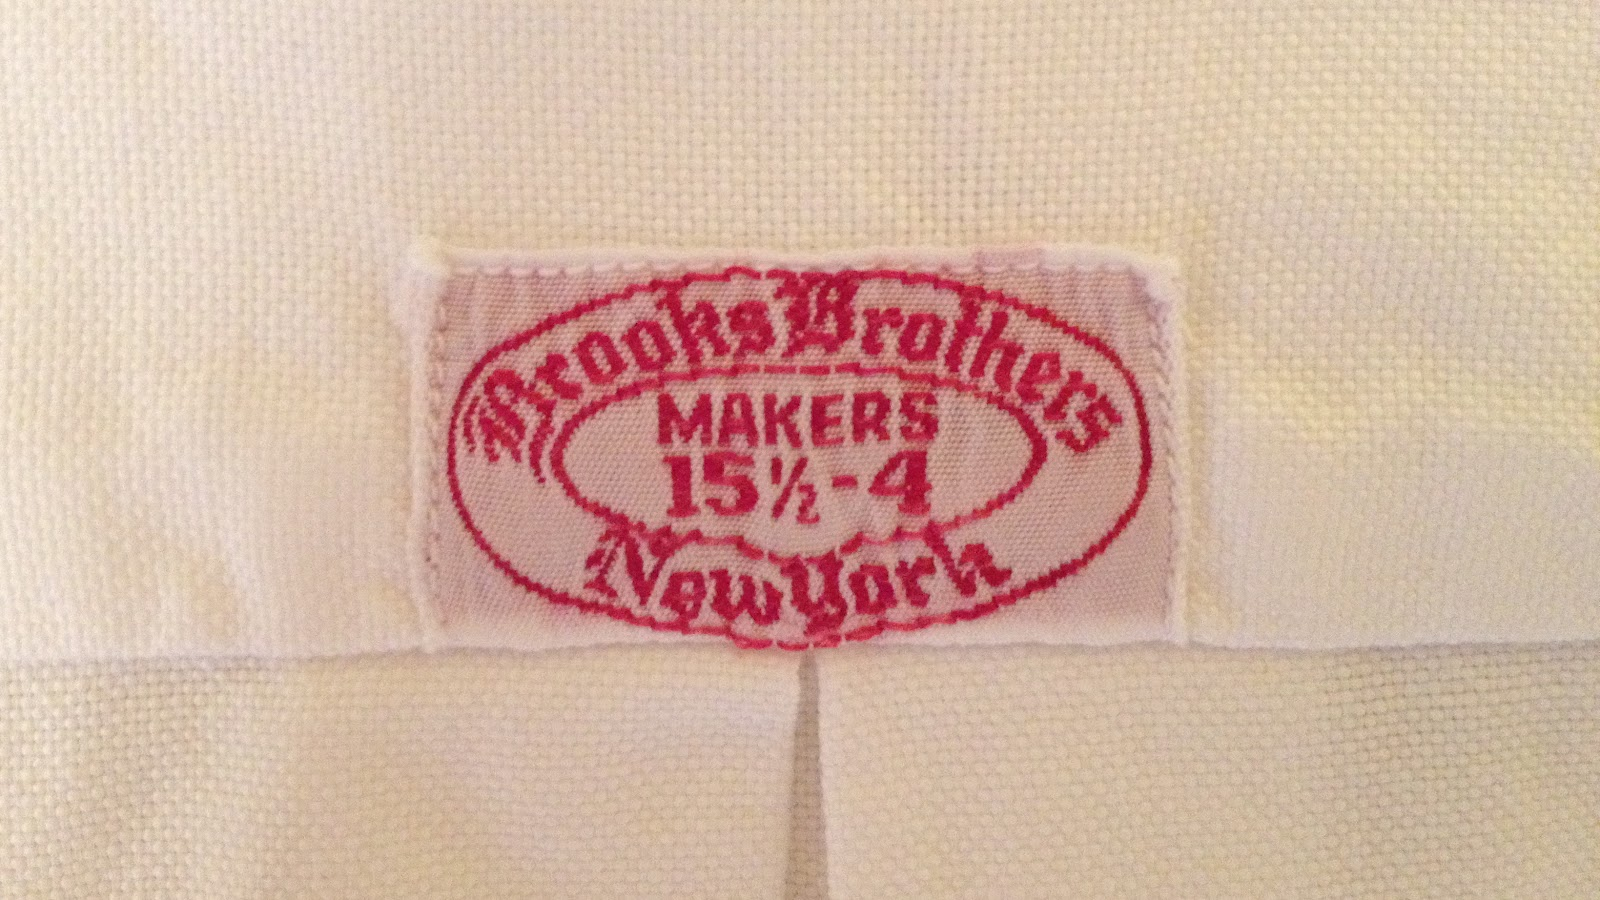 dating brooks brothers labels The brooks label on the inside of the coat was embellished with an embroidered design of an american bald eagle holding in its beak a flowing pennant inscribed one country, one destiny a golden age by the turn into the twentieth century, brooks brothers was on the verge of a golden age, the period from roughly 1900 to 1970.